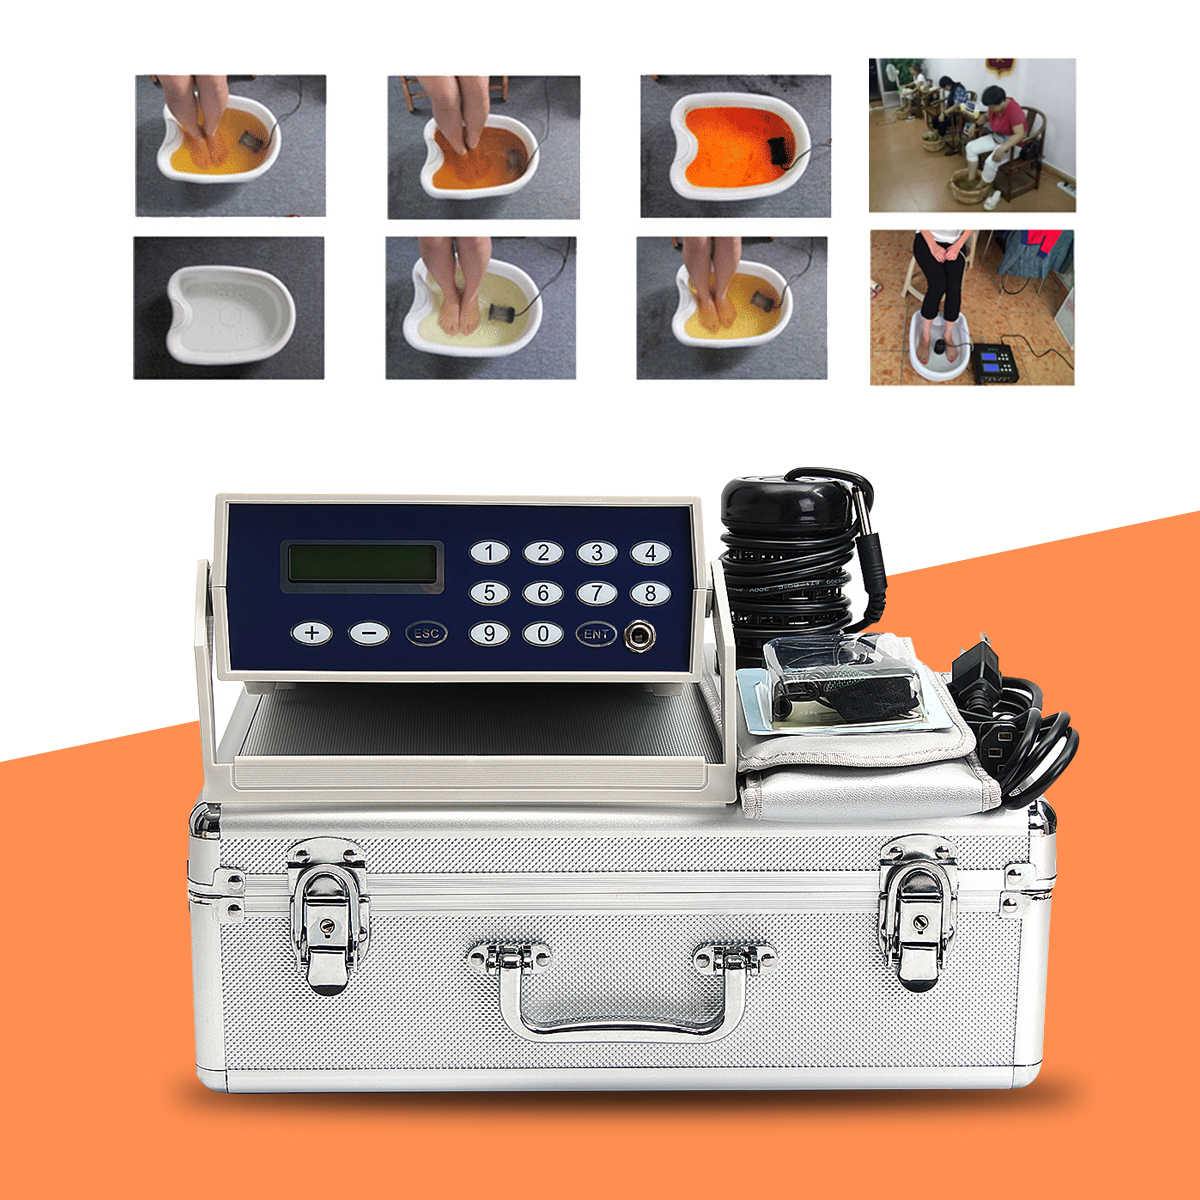 Detox foot care Machine Cell Ion Ionic Aqua Foot Bath SPA Cleanse Machine Fir Belt Box CAN foot bath massage pain relief machine